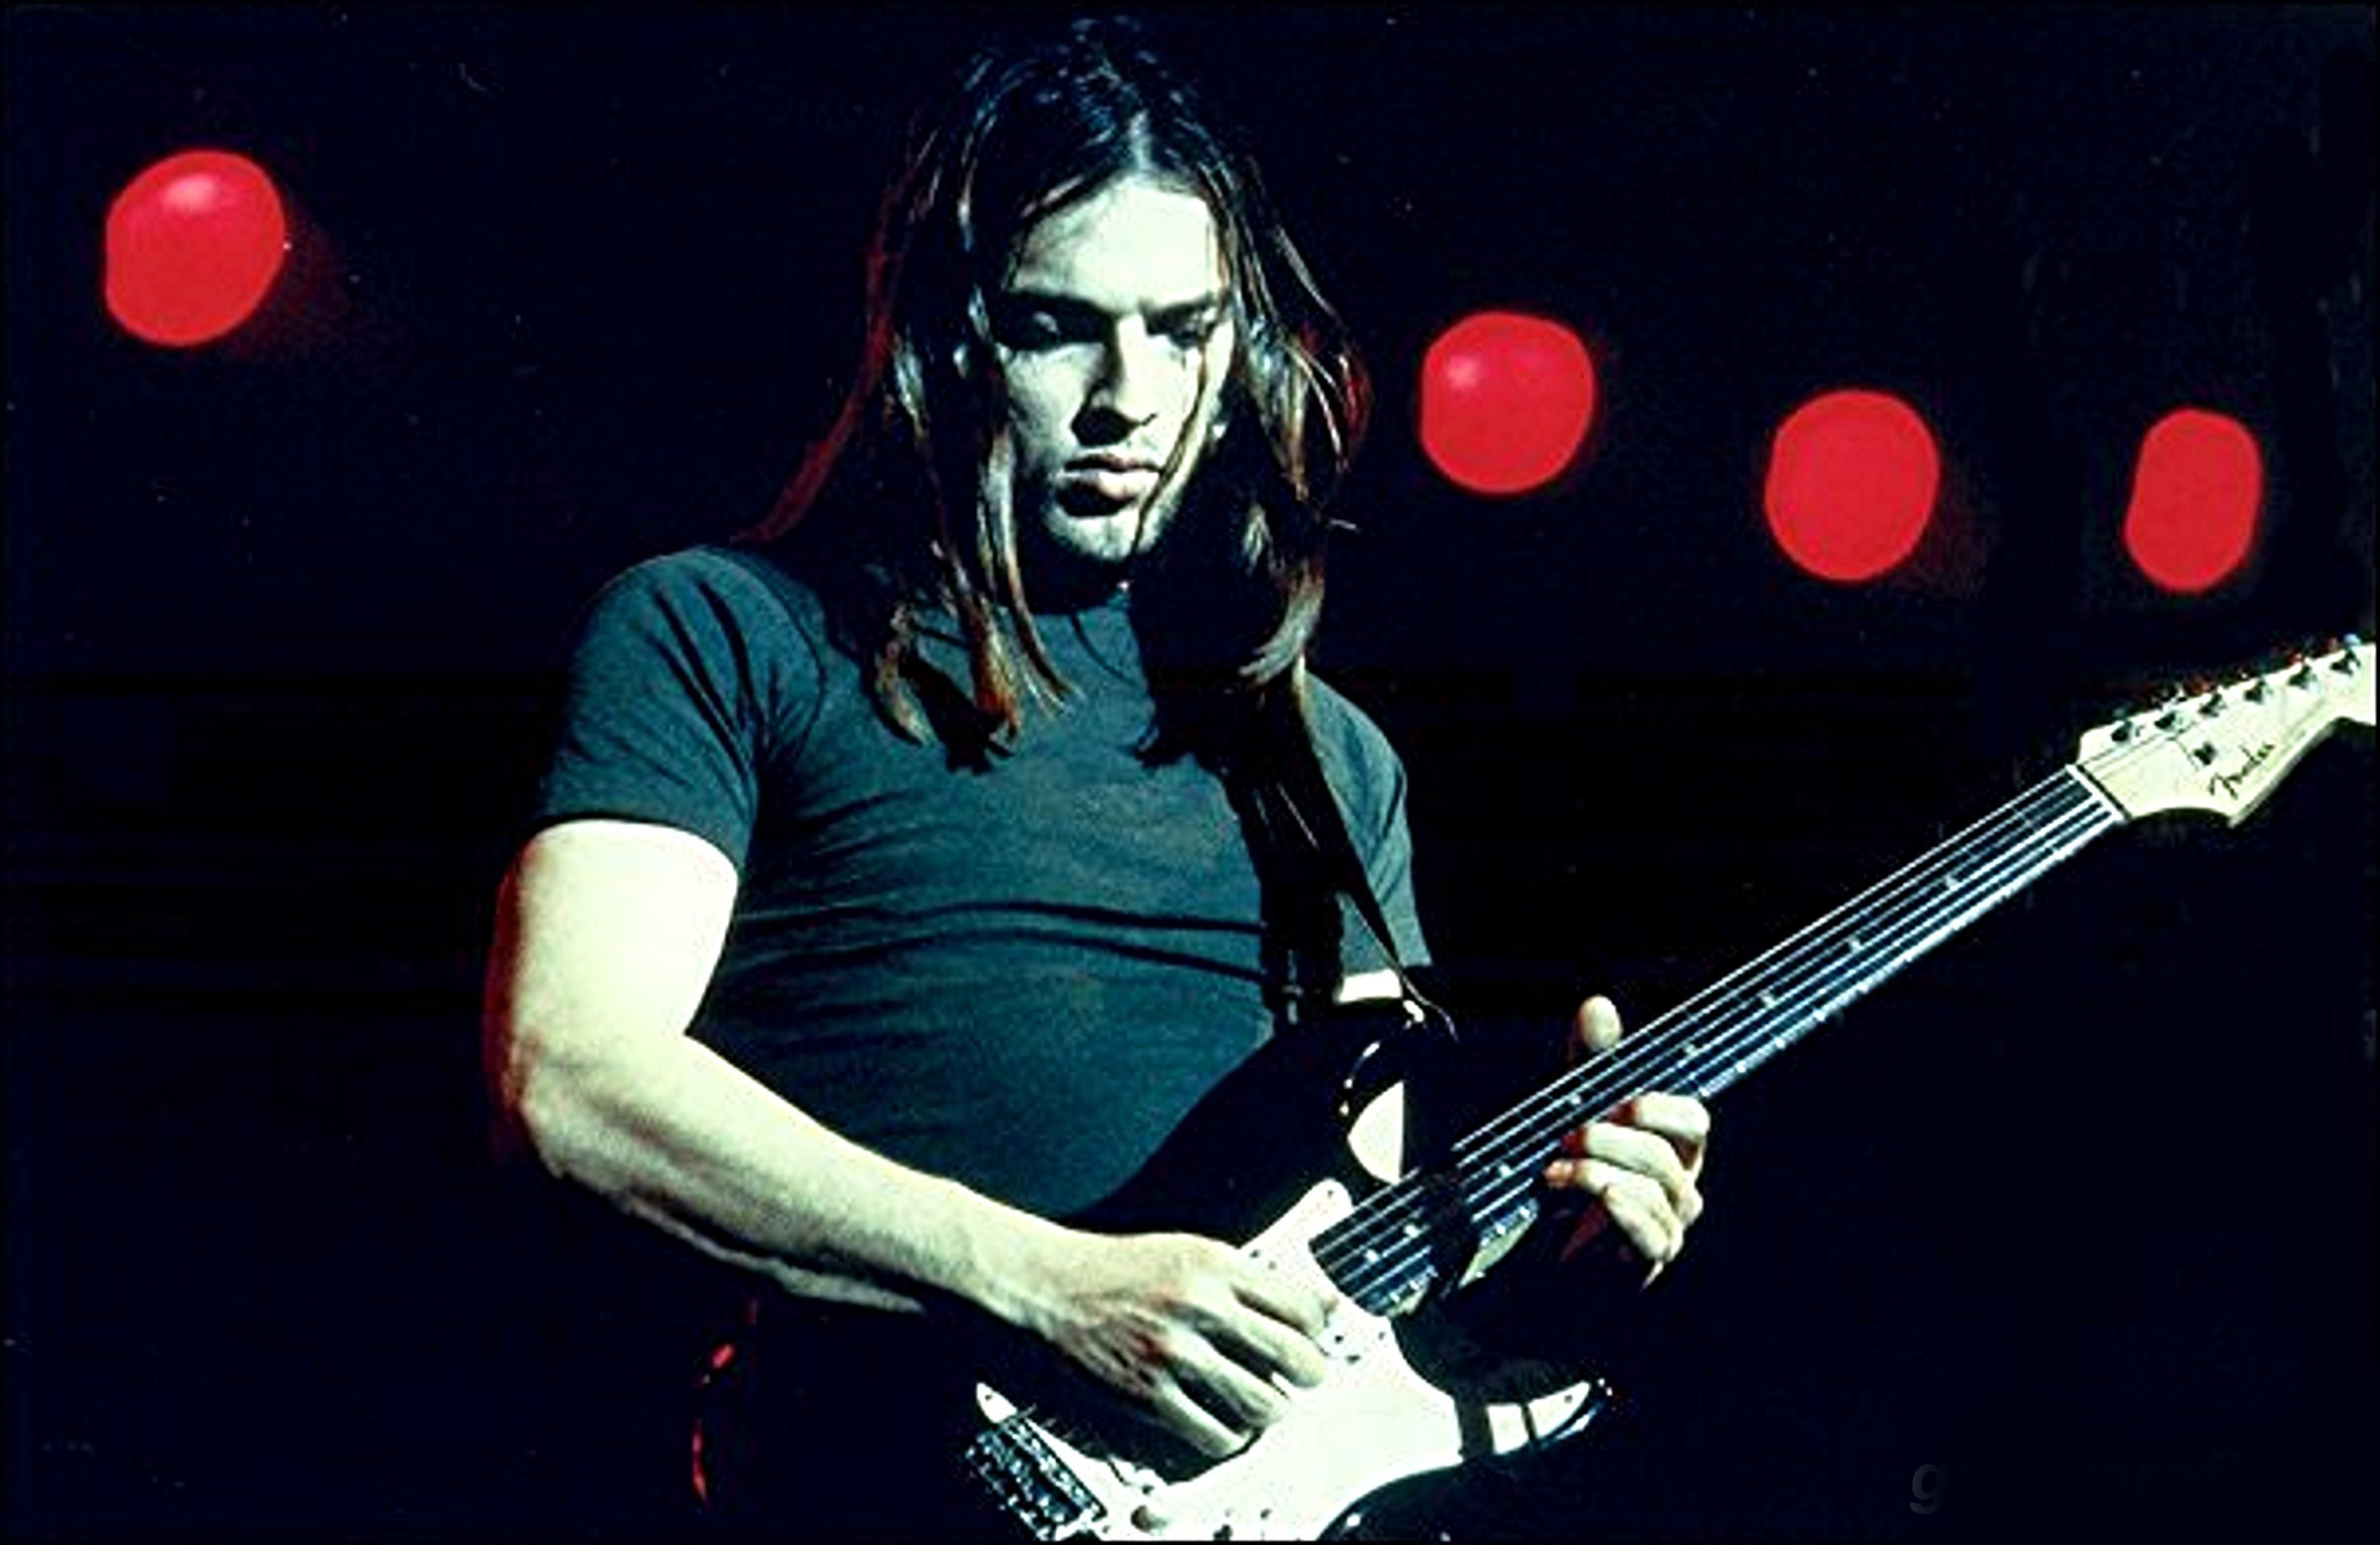 David gilmour with fender stratocaster